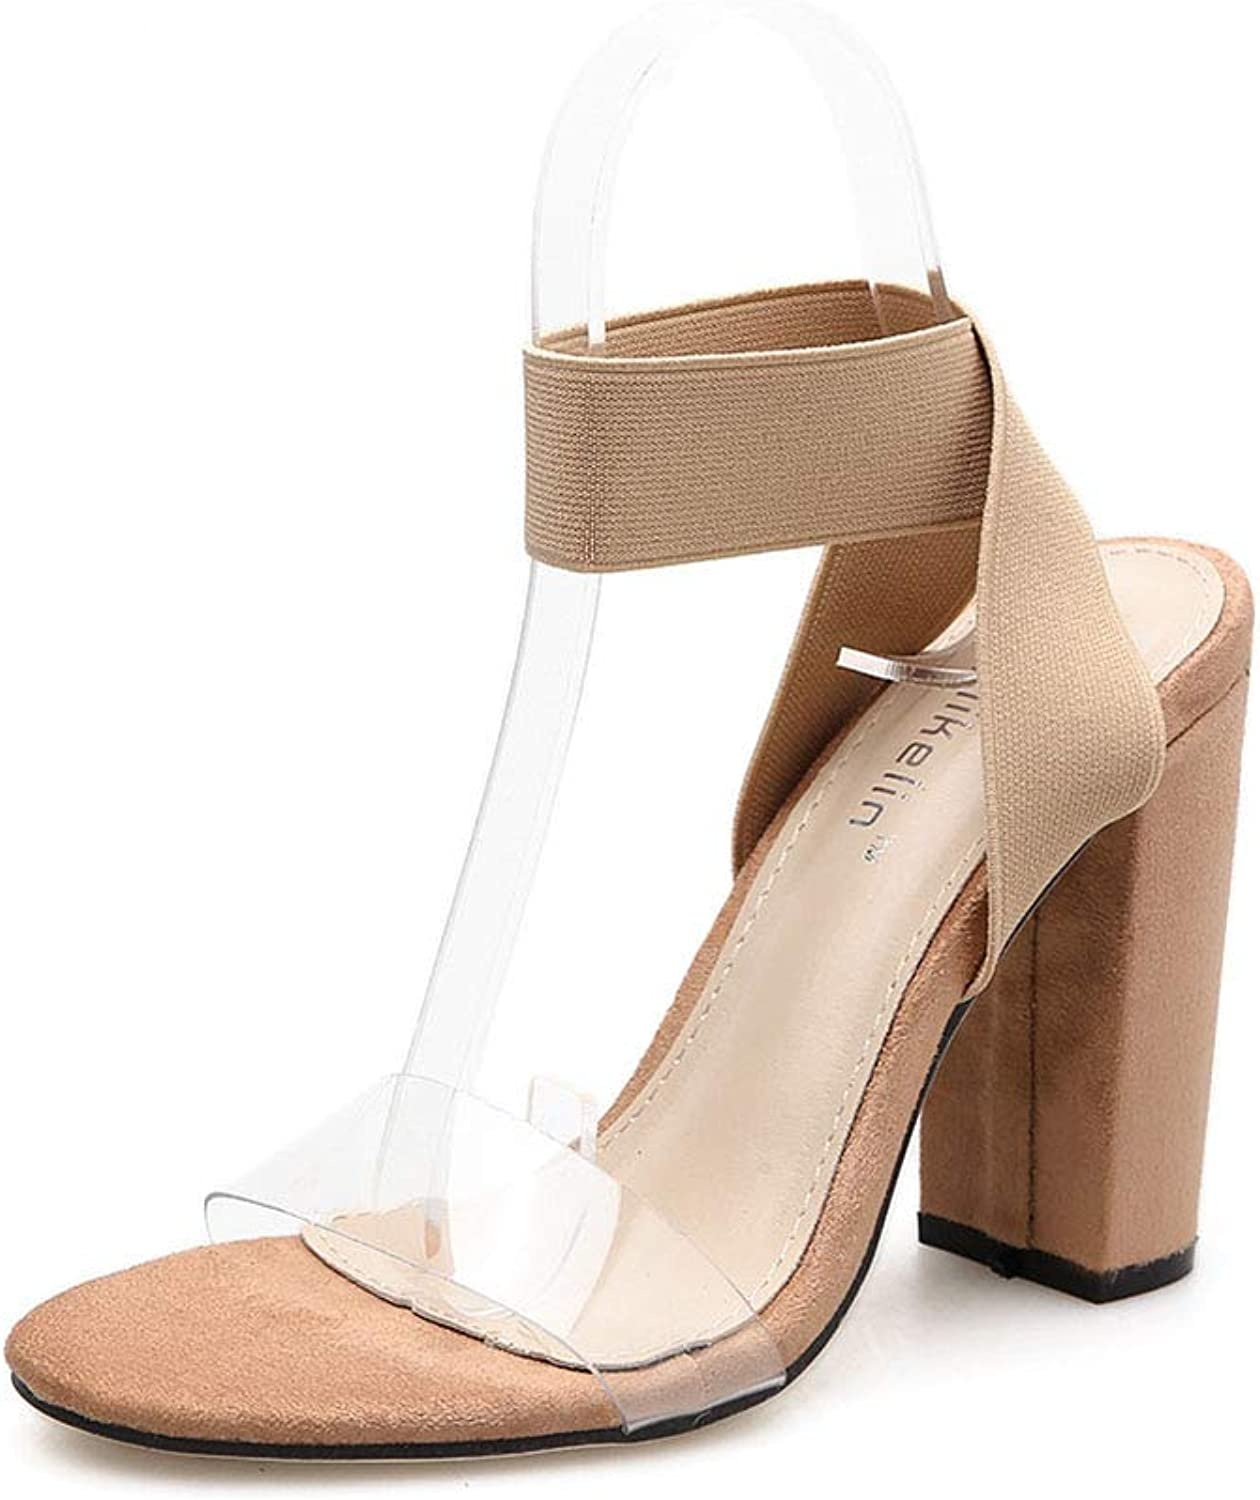 Women's high Heels, Europe and The United States Foreign Trade Sexy Ladies Sandals Fish Mouth Transparent Elastic Thick Super high Heel shoes Tide 40,a,40